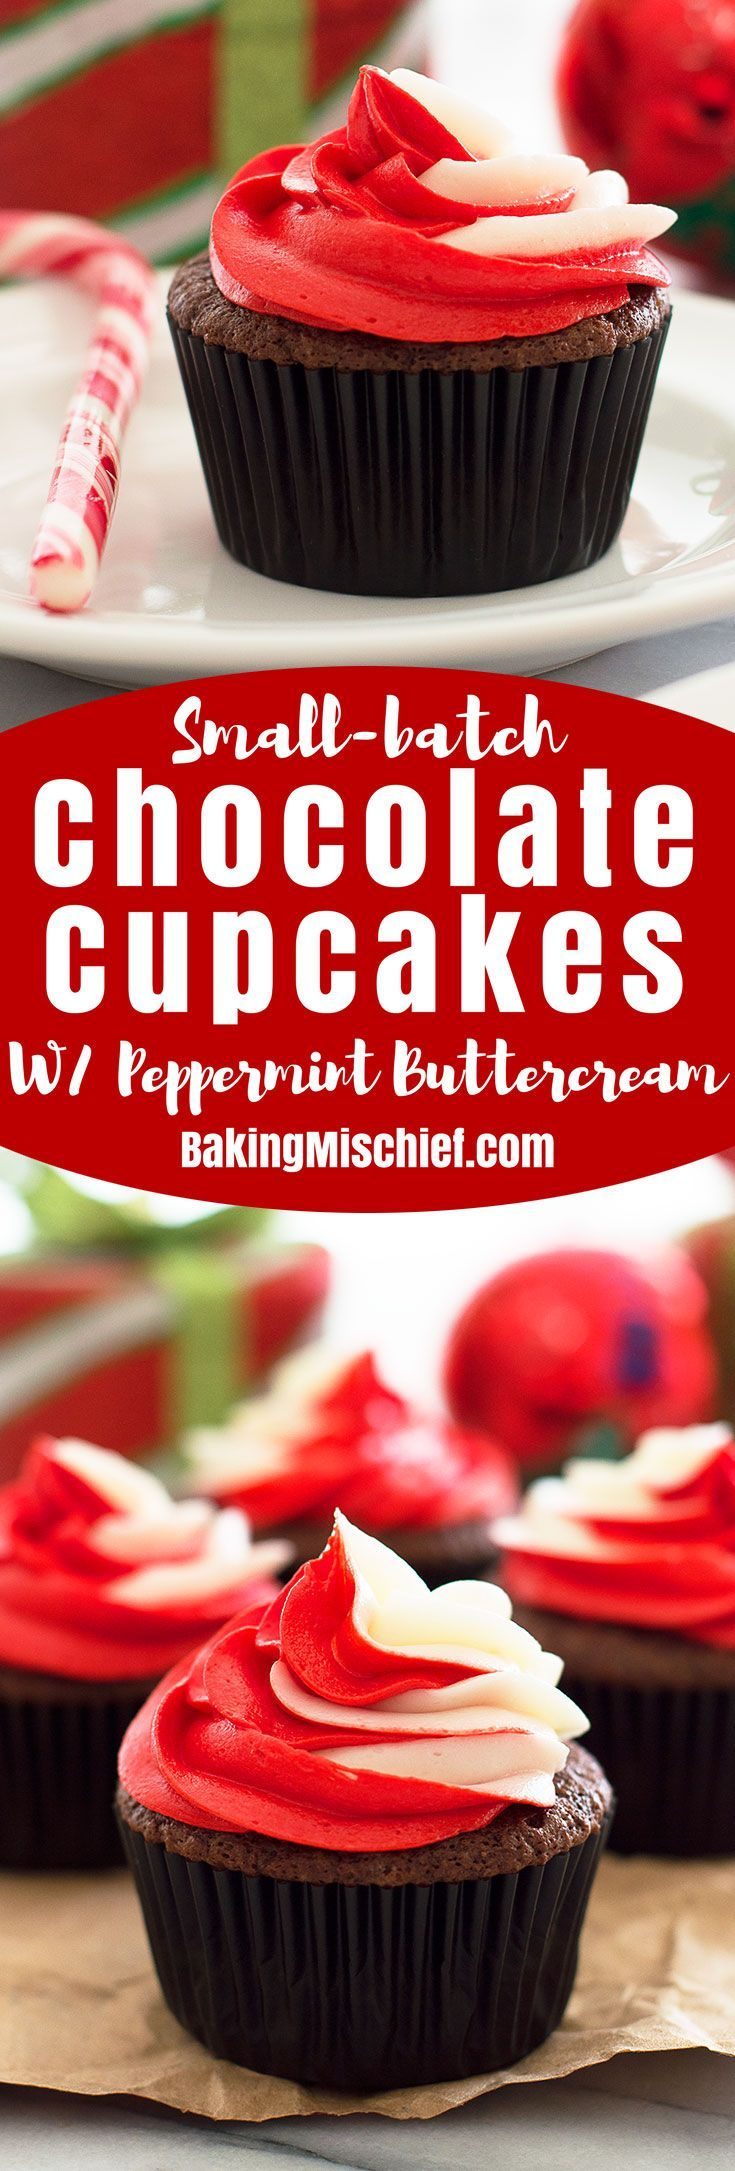 A recipe for four perfect and adorable small-batch chocolate cupcakes with peppermint buttercream from my new cookbook, Baking for Two. Recipe includes nutritional information. From http://BakingMischief.com